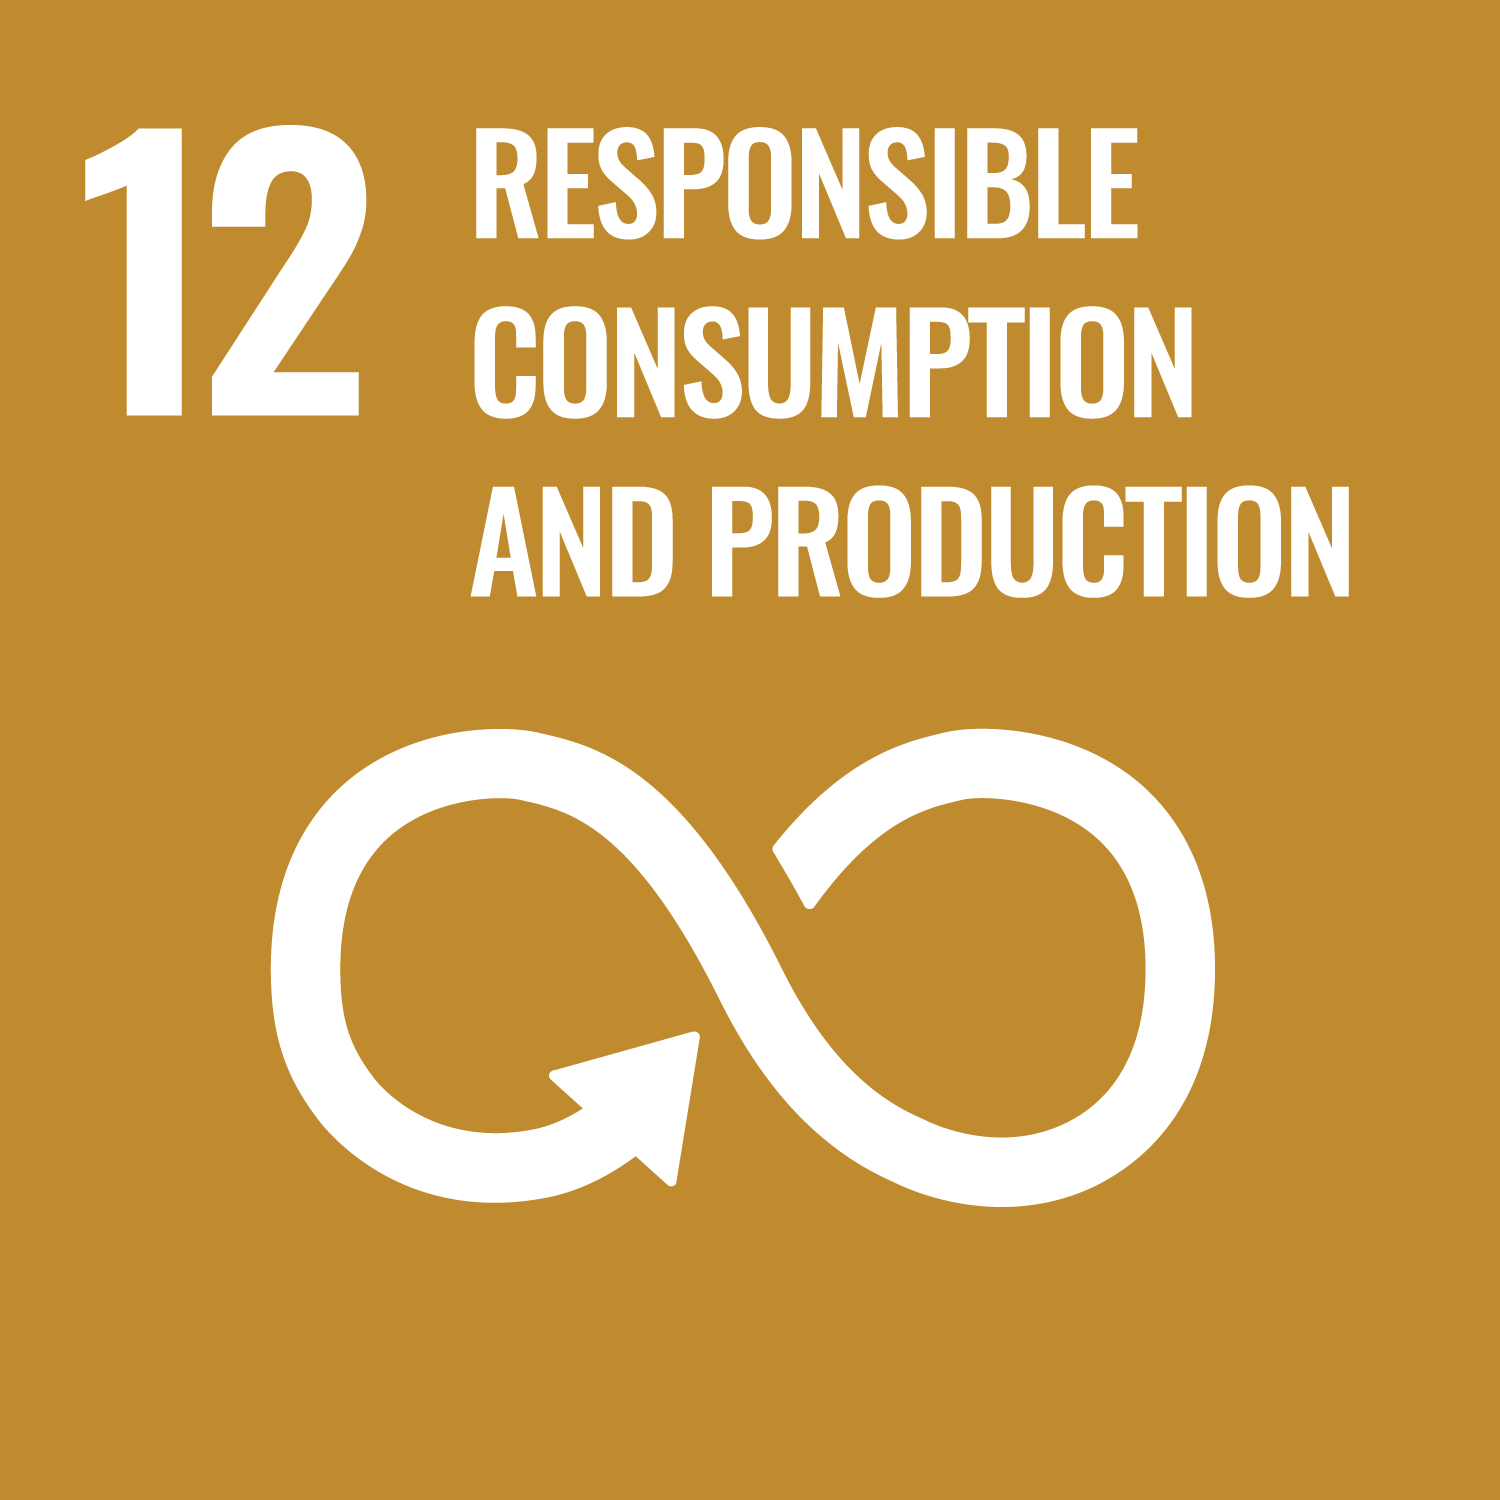 Responsible Consumption and Production SDG icon